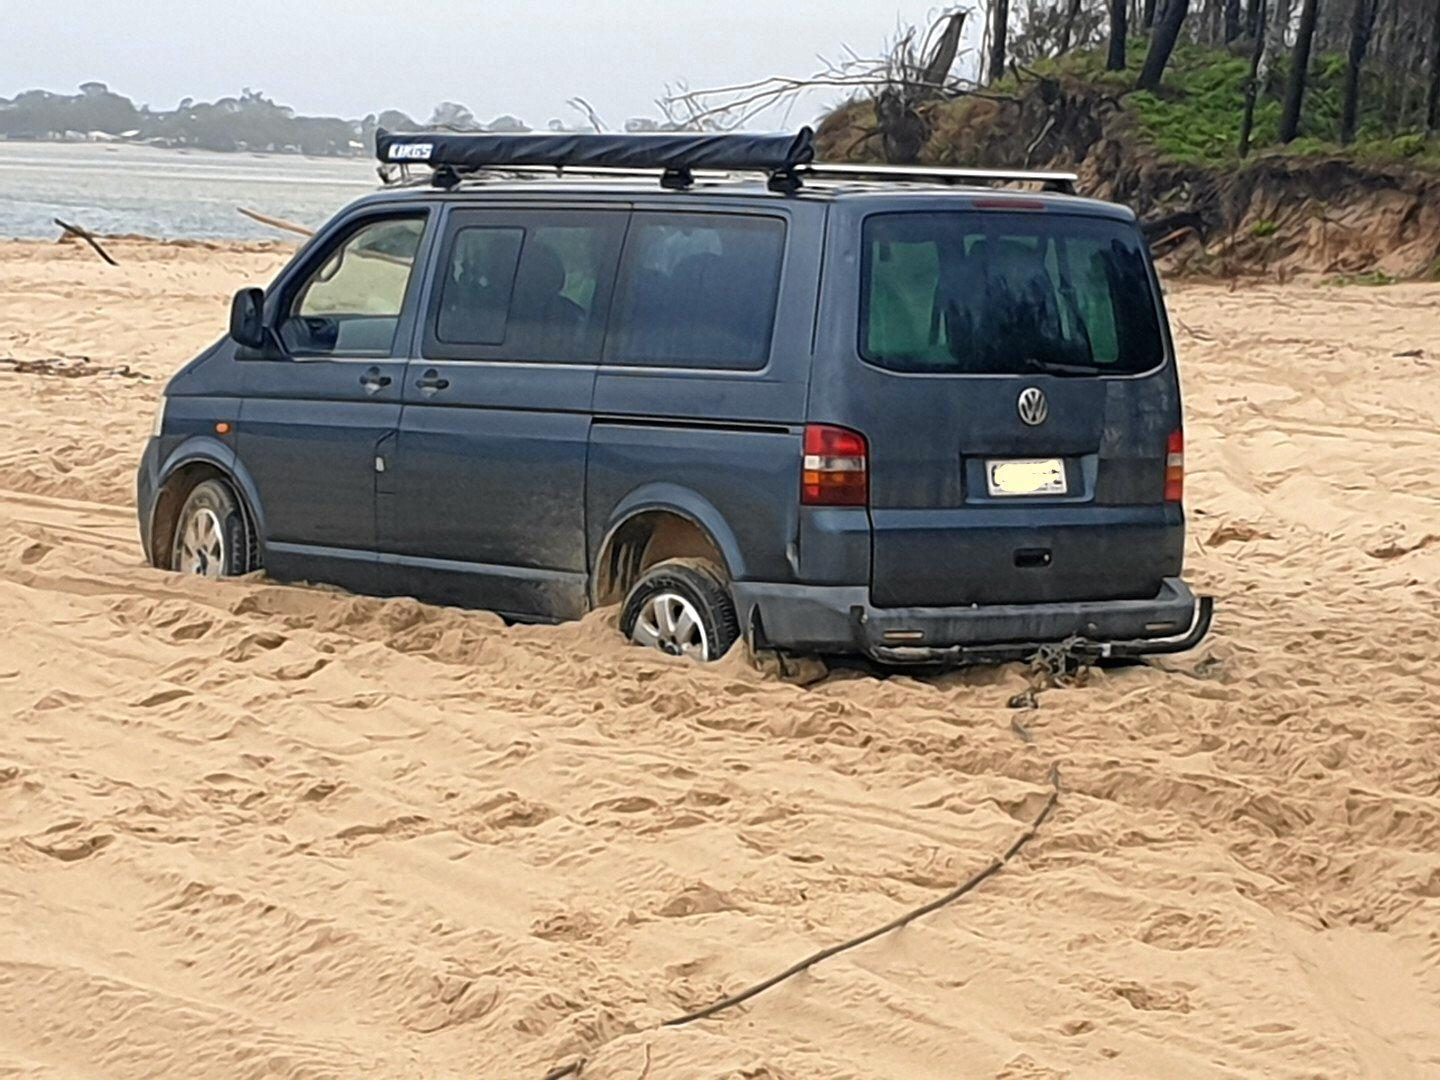 The V-Dub stuck at Teewah Beach, requiring assistance from Clayton's Towing.